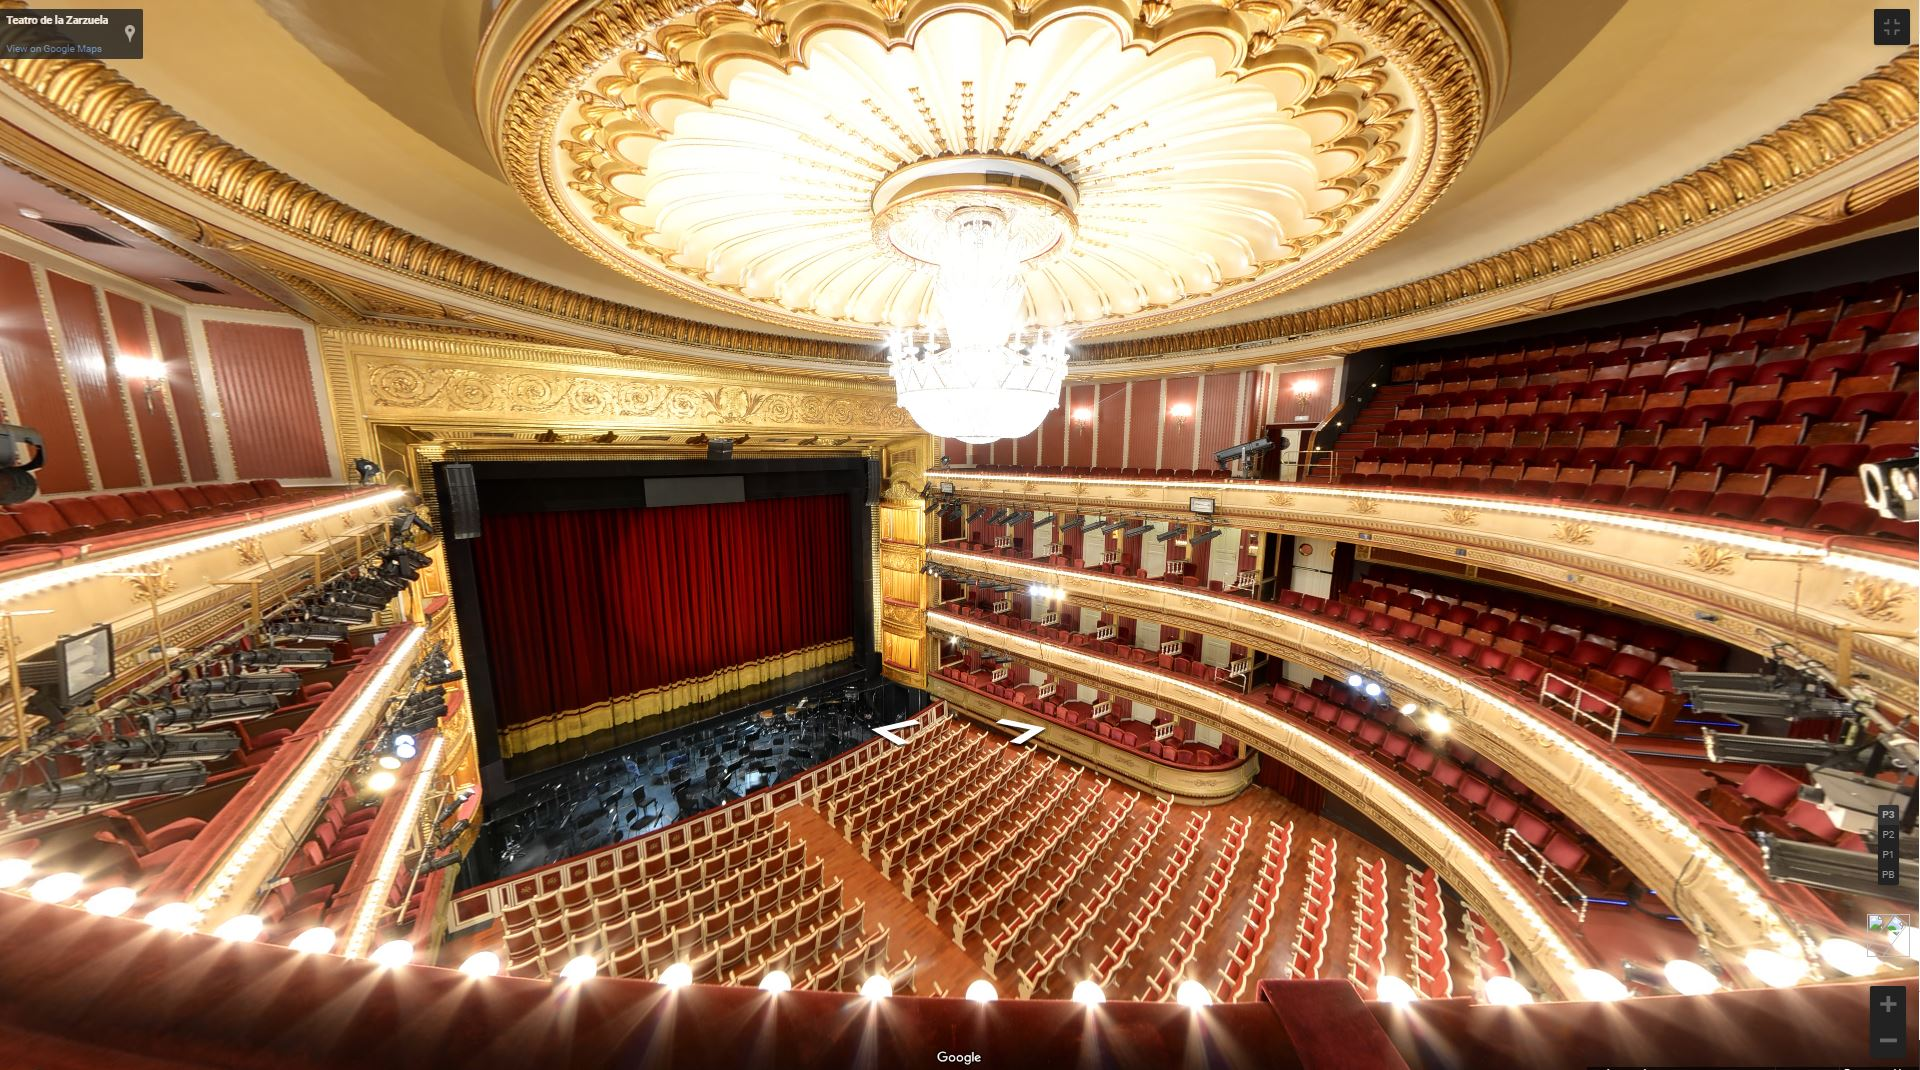 Teatro de la Zarzuela in Madrid, Spain | Tour Tuesday Feature